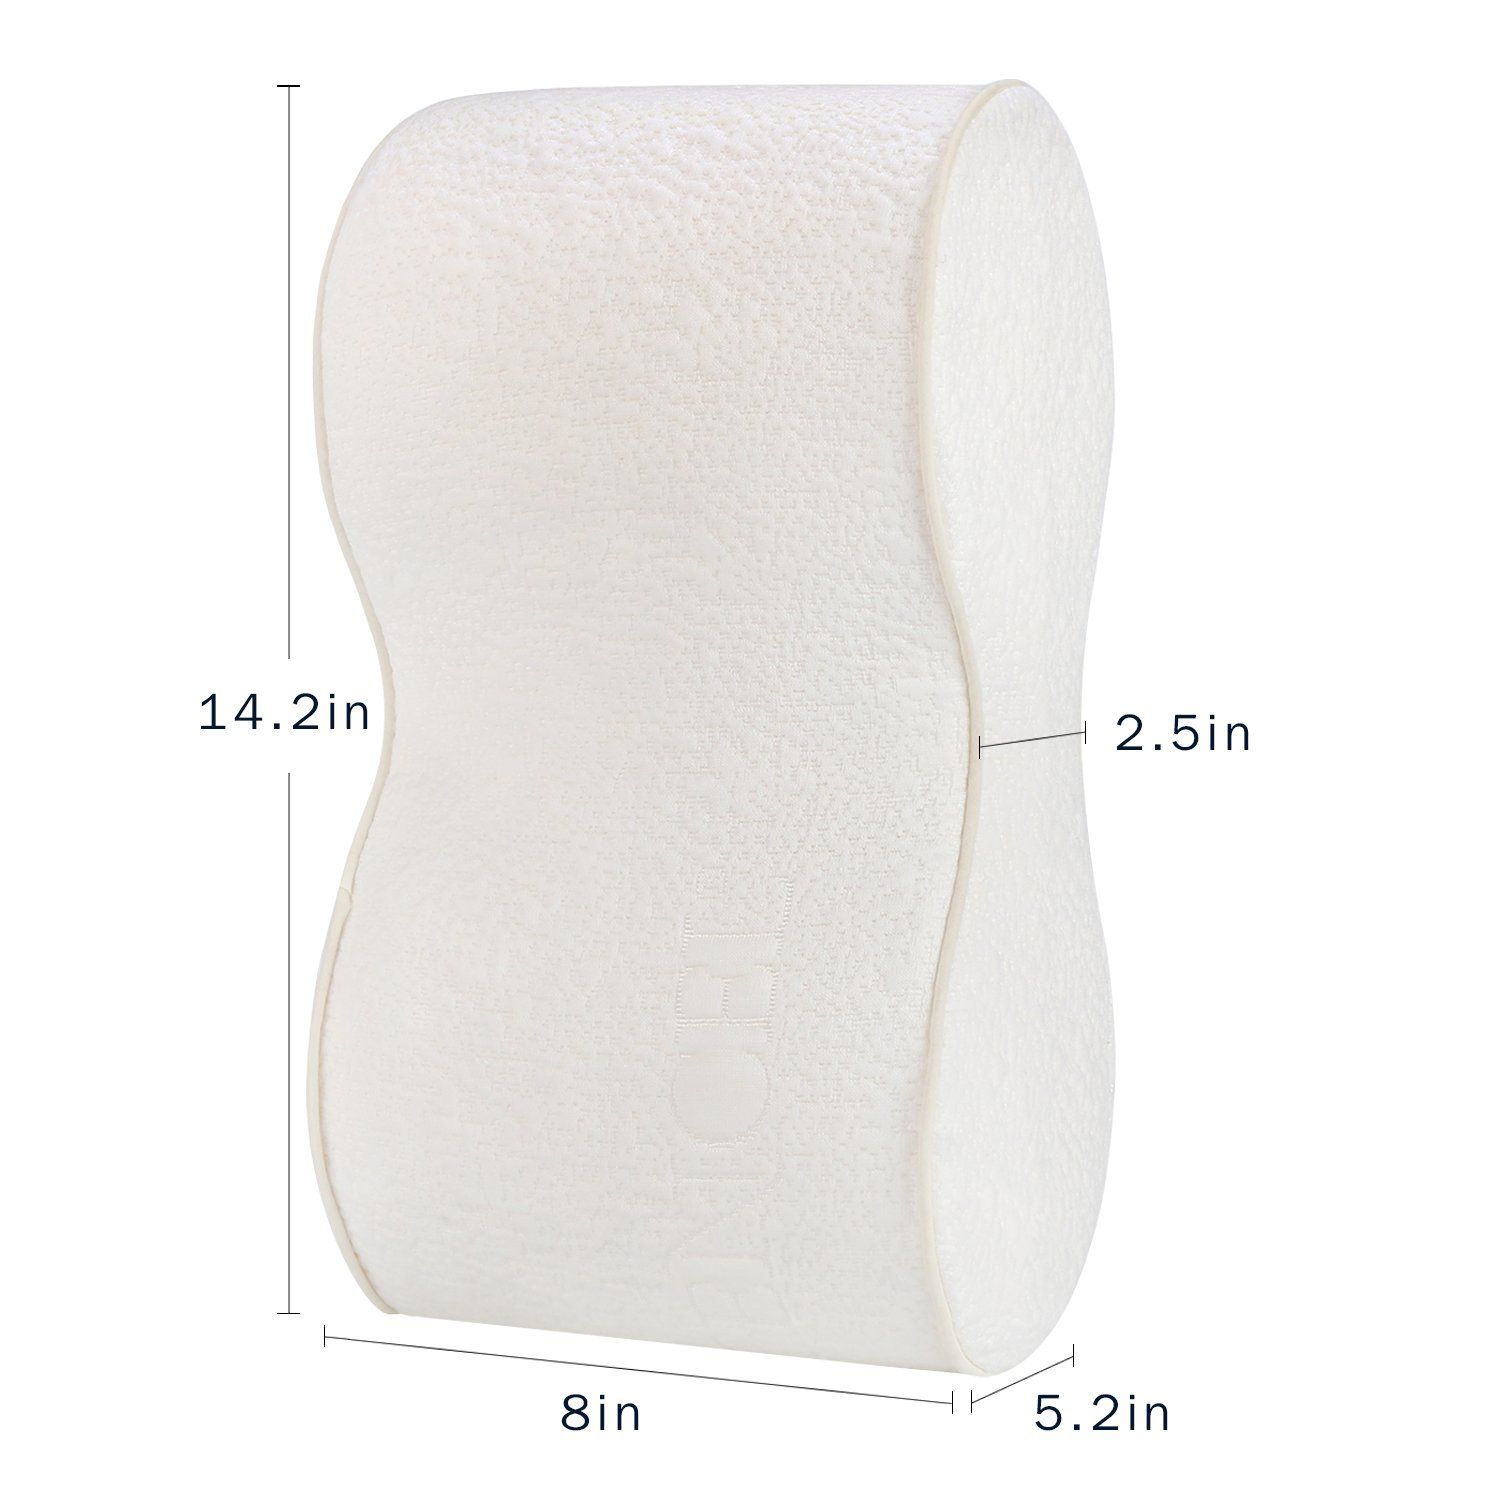 knee pillow for sciatica relief back pain leg pain pregnancy hip and